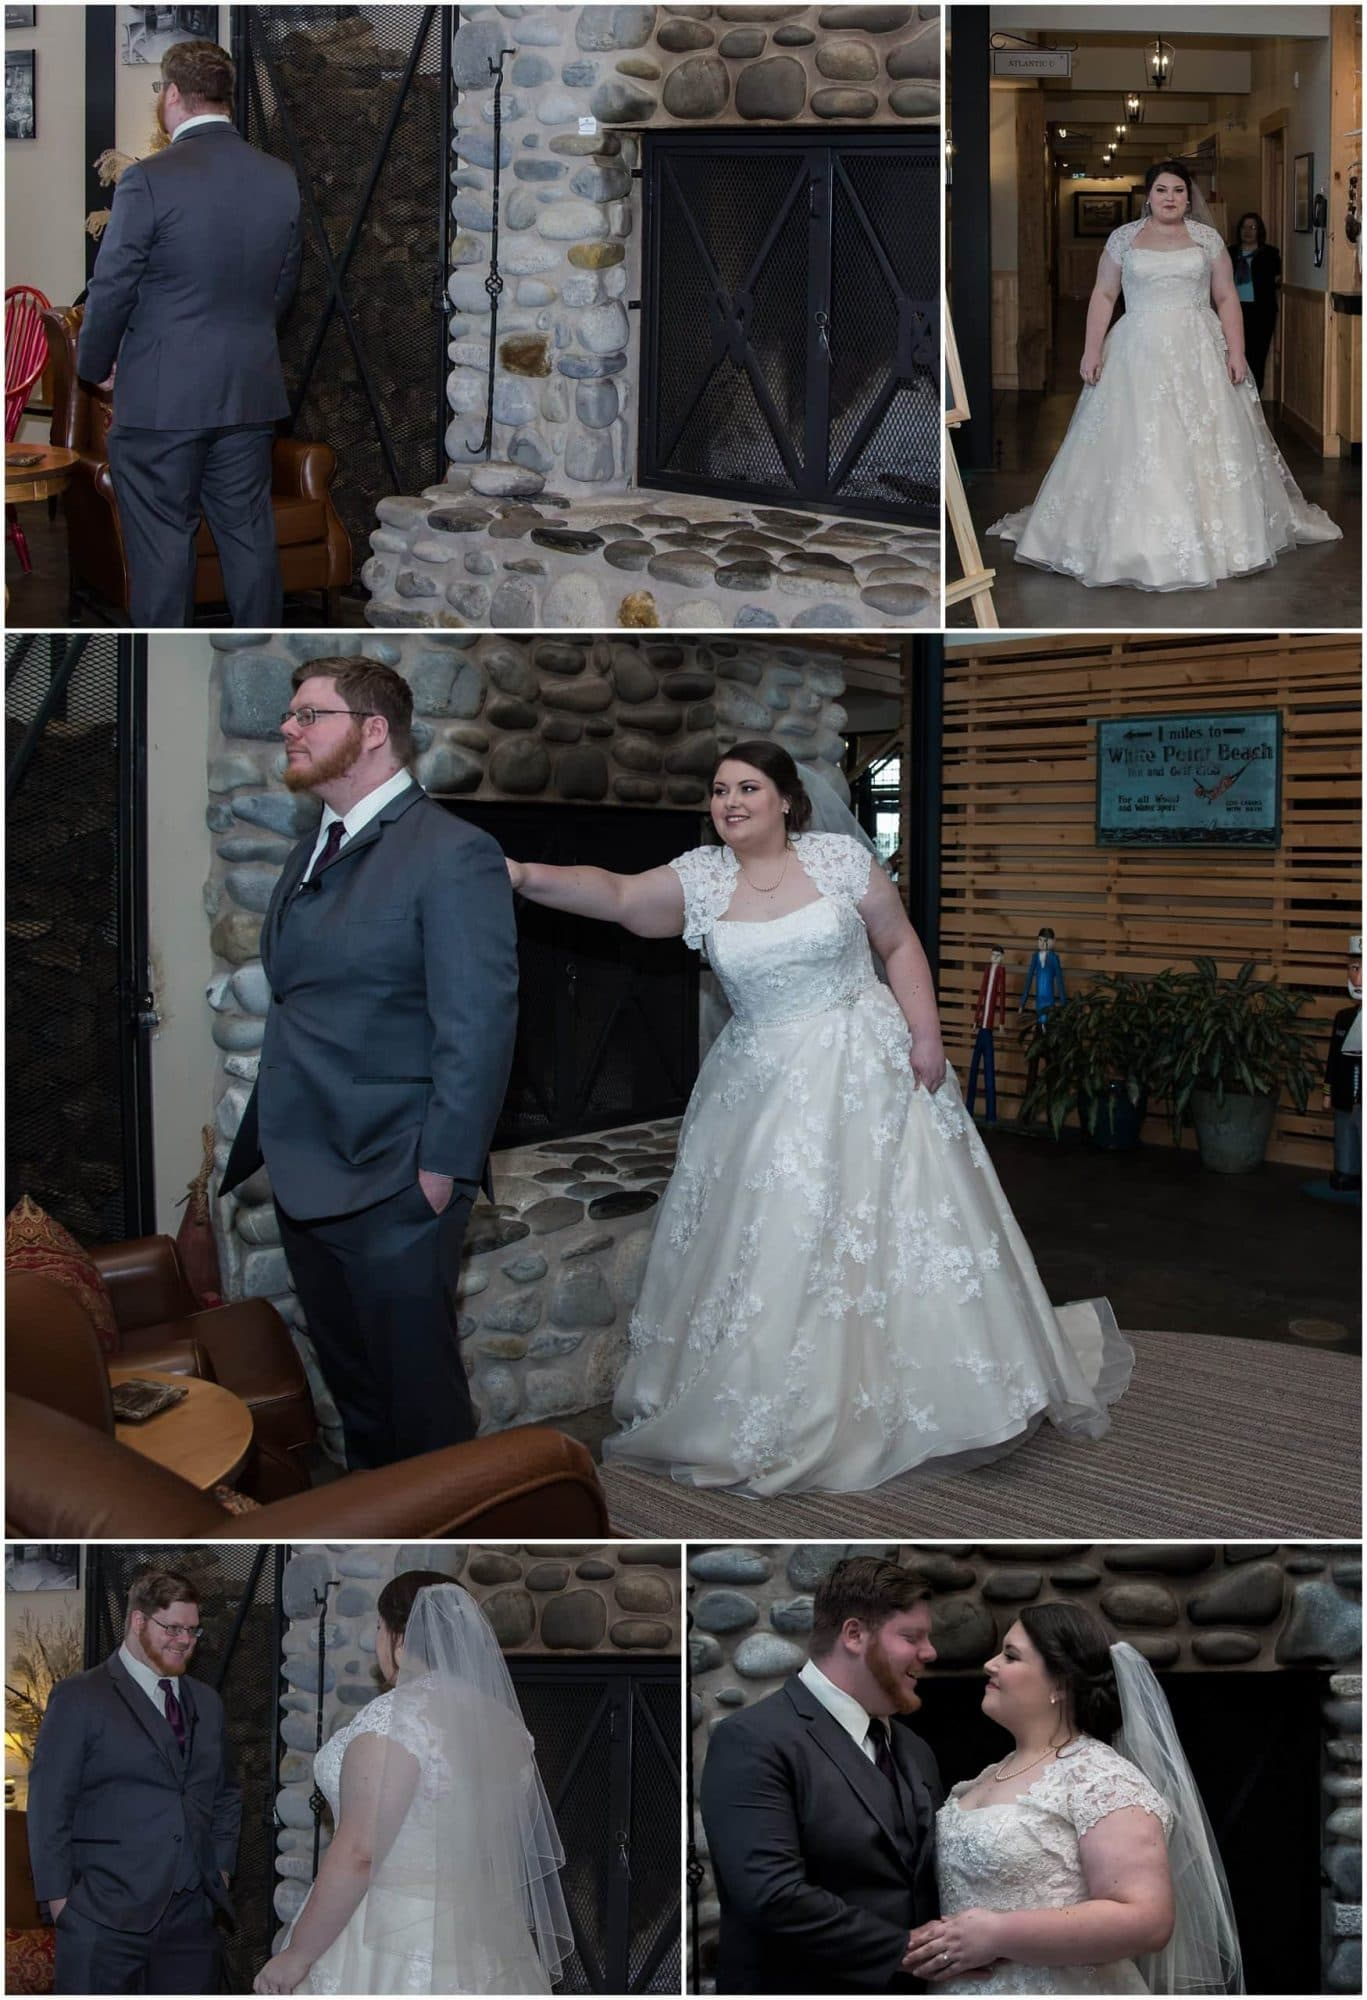 The bride and groom have their first look before their wedding ceremony at White Point Beach Resort in Nova Scotia.